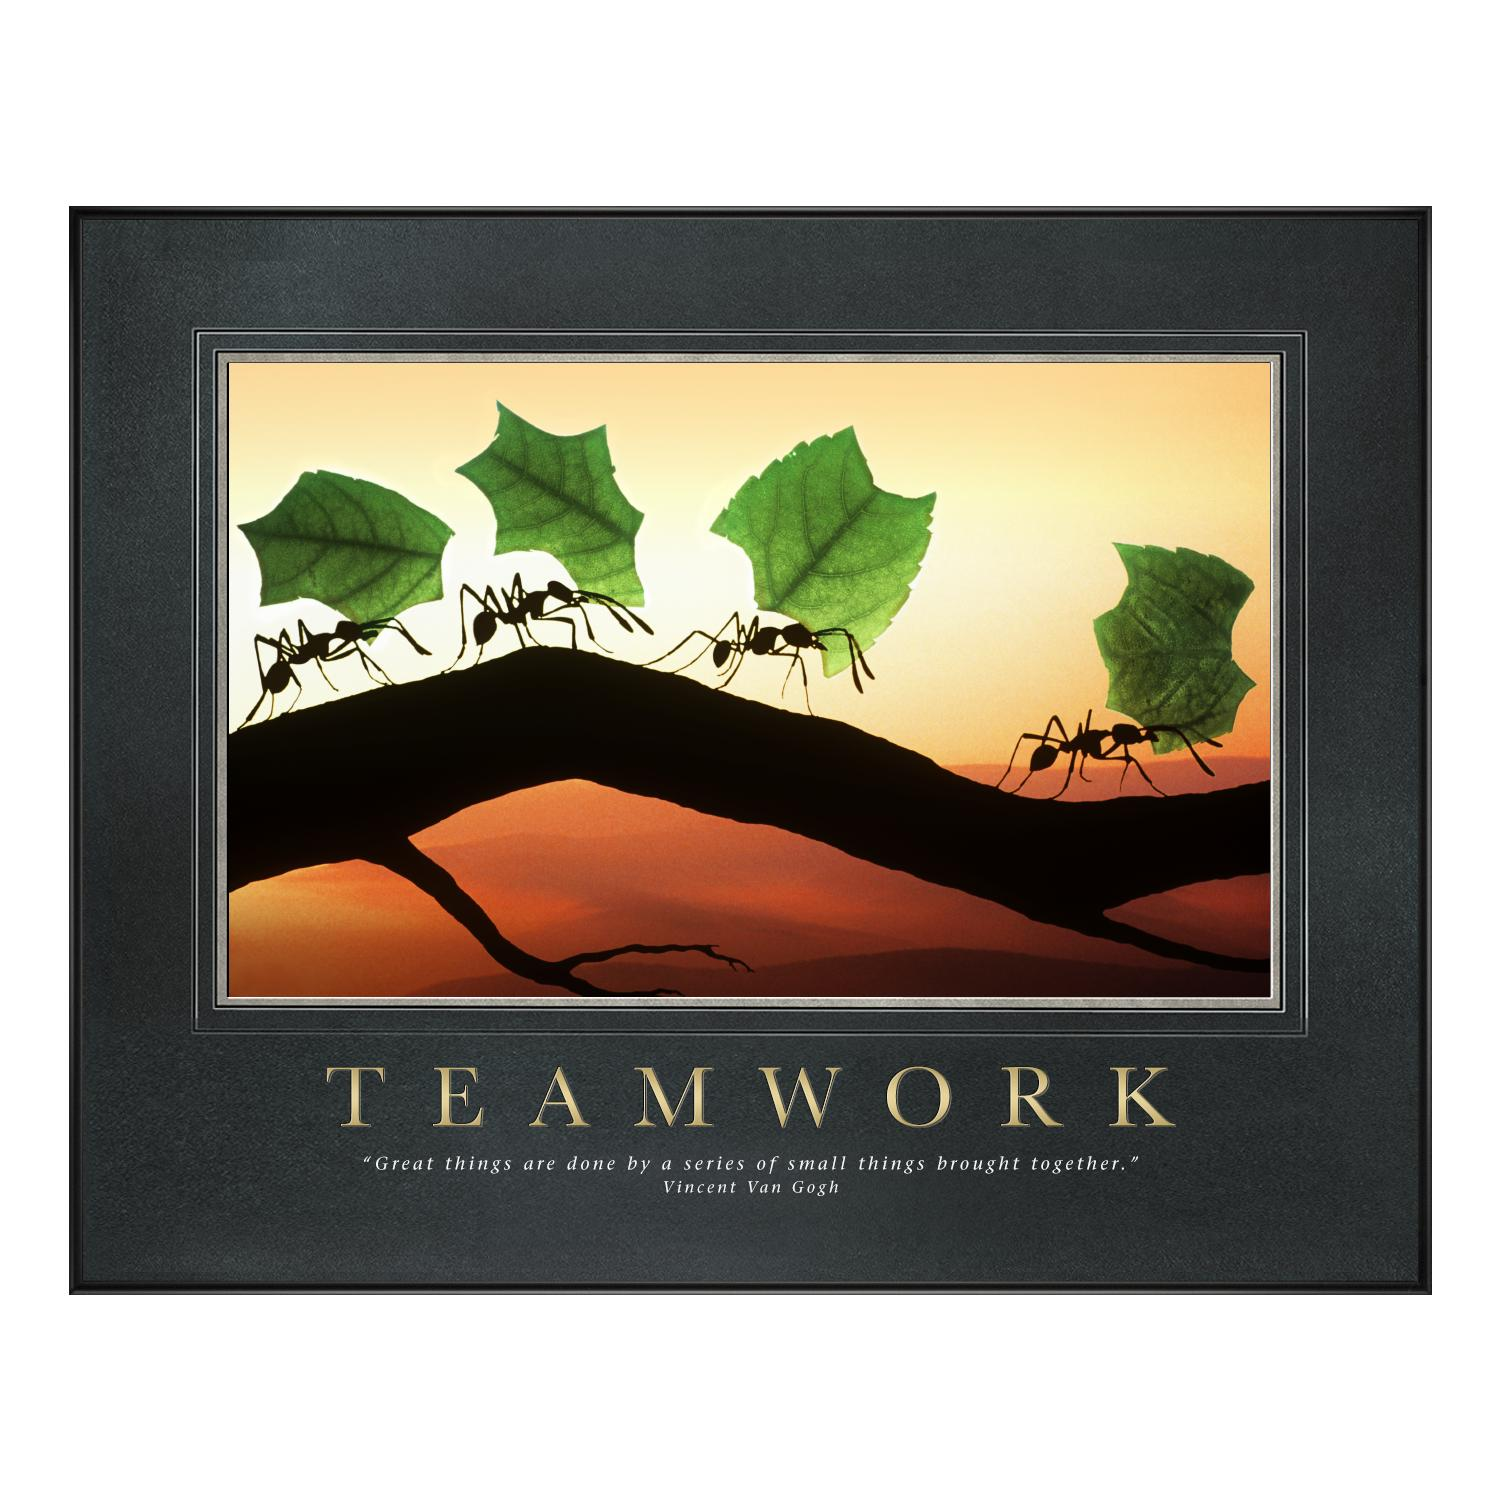 Demotivational Quotes For The Workplace Quotesgram: Inspirational Teamwork Quotes For Employees. QuotesGram